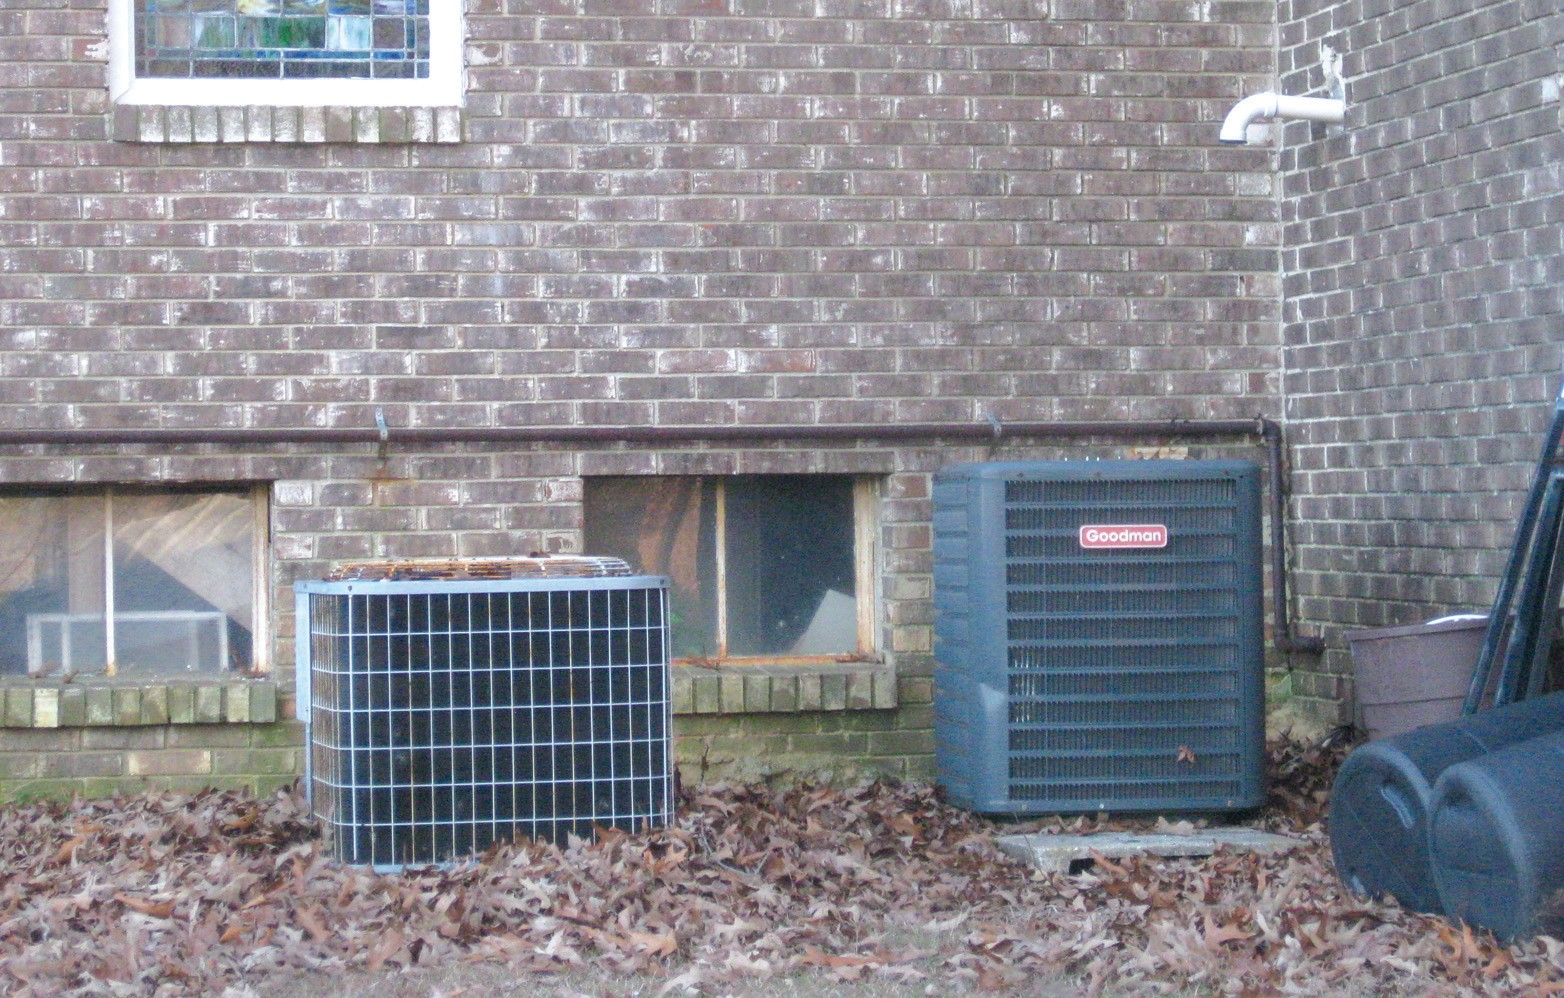 Air conditioning units like these, installed at rural churches in out-of-the-way locations without fencing or enclosures for protection from theft, are like 'giving coyotes a free meal,' according to a local insurance agent.